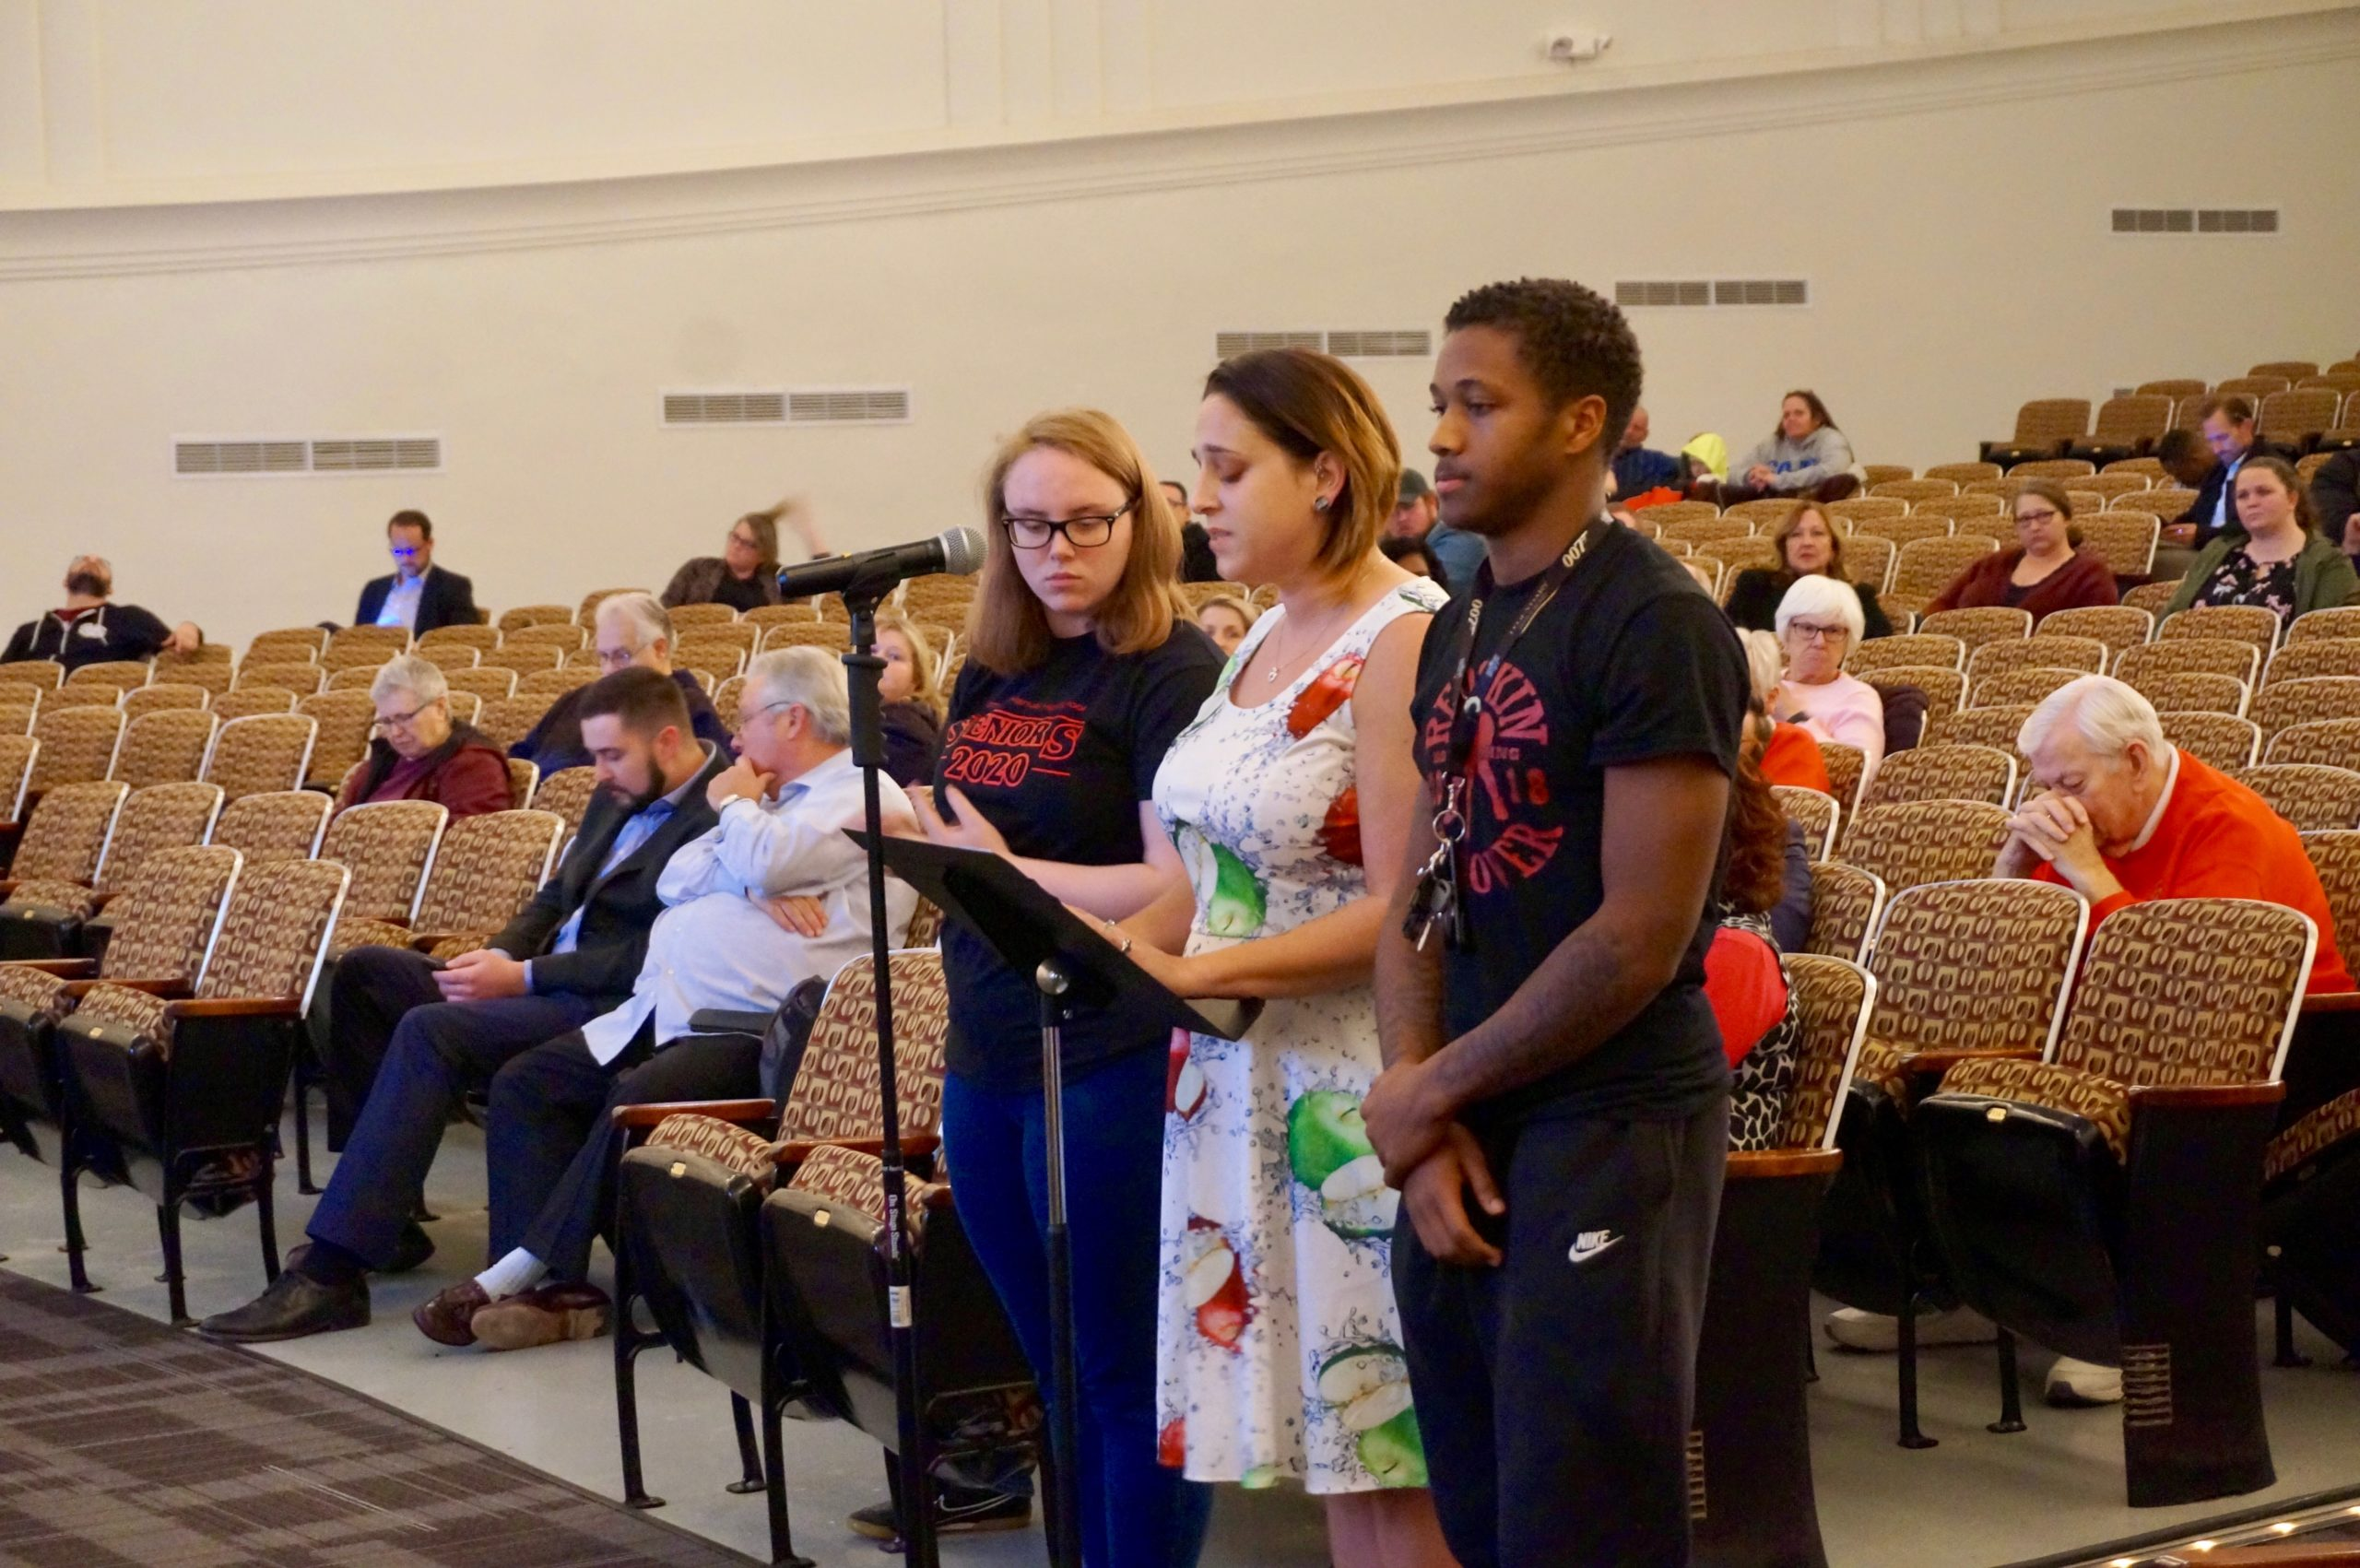 brittany yanasak, a reading specialist and English teacher from Manual High School, brought two students to the microphone as she spoke.